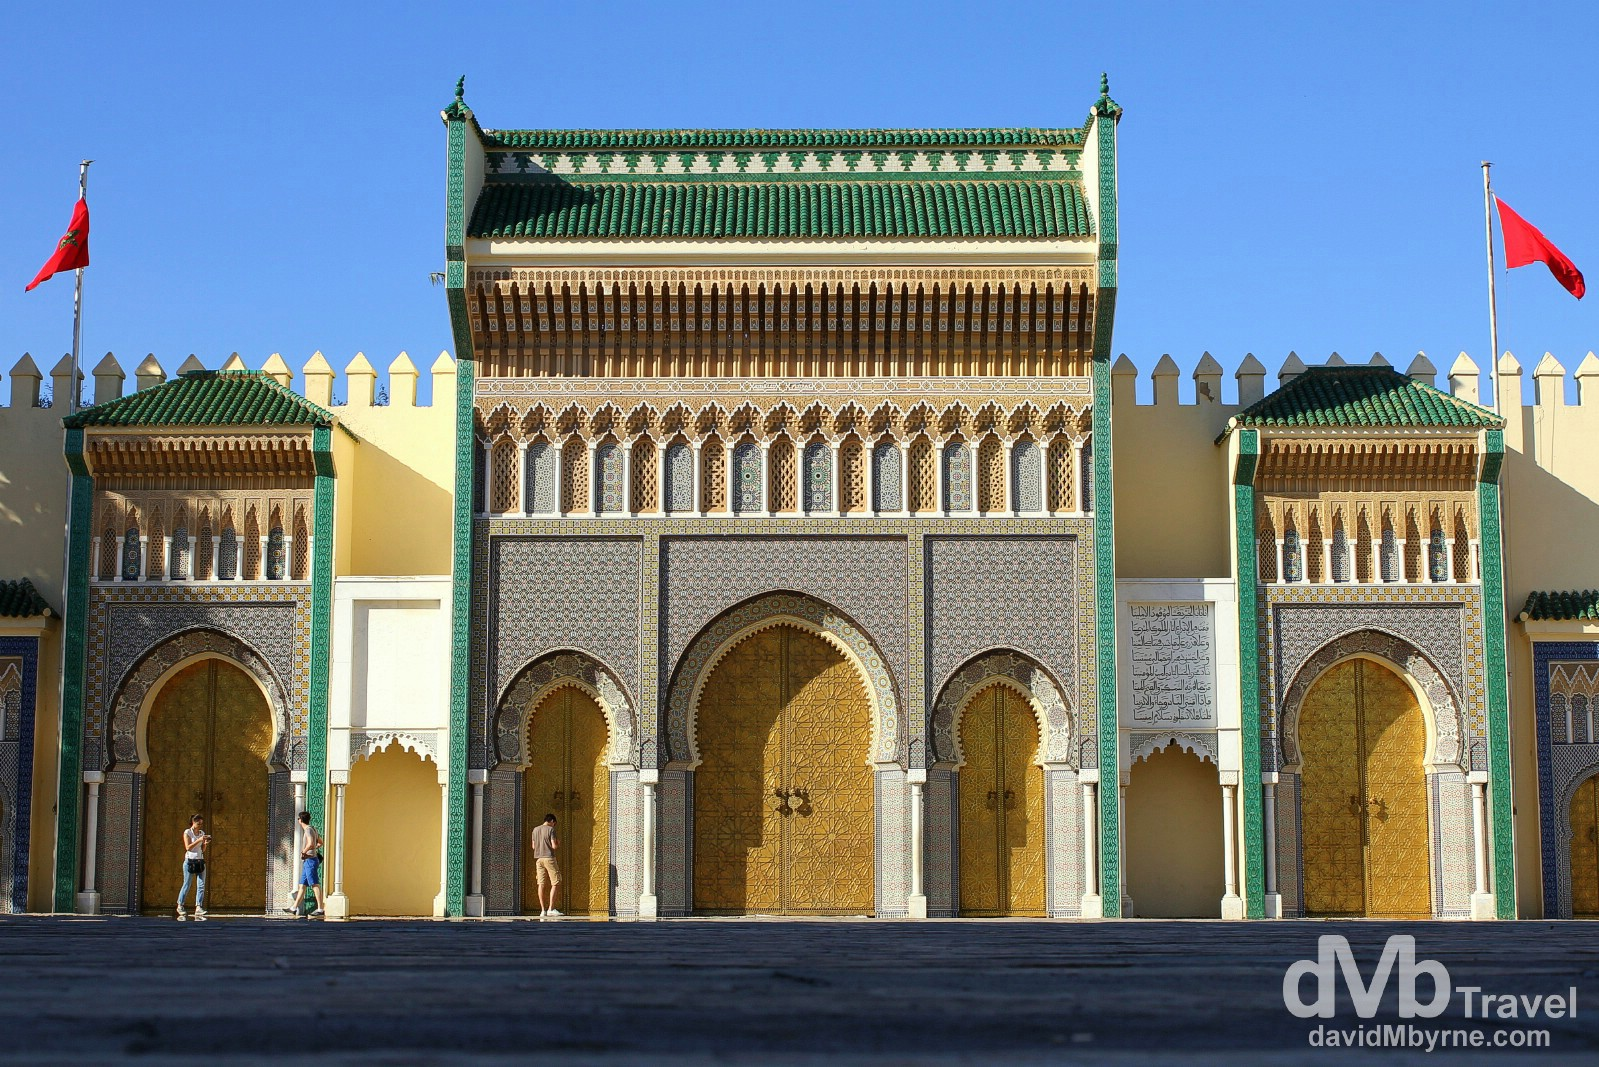 One of the impressive entrance gates to the Royal Palace in Fes el Djedid (New Fes), Fes, Morocco. May 28th, 2014.